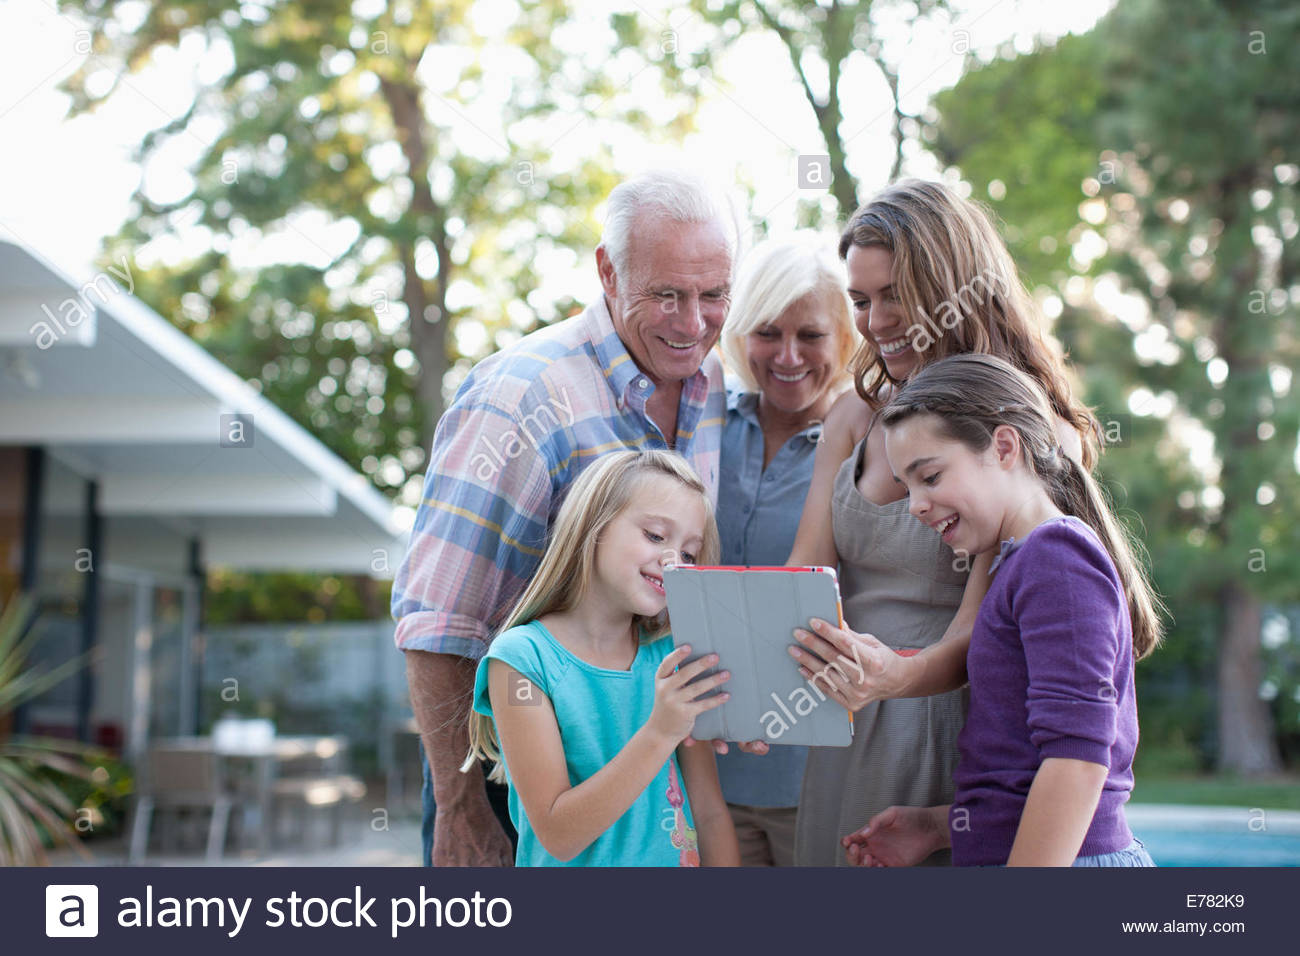 Extended family outdoors - Stock Image